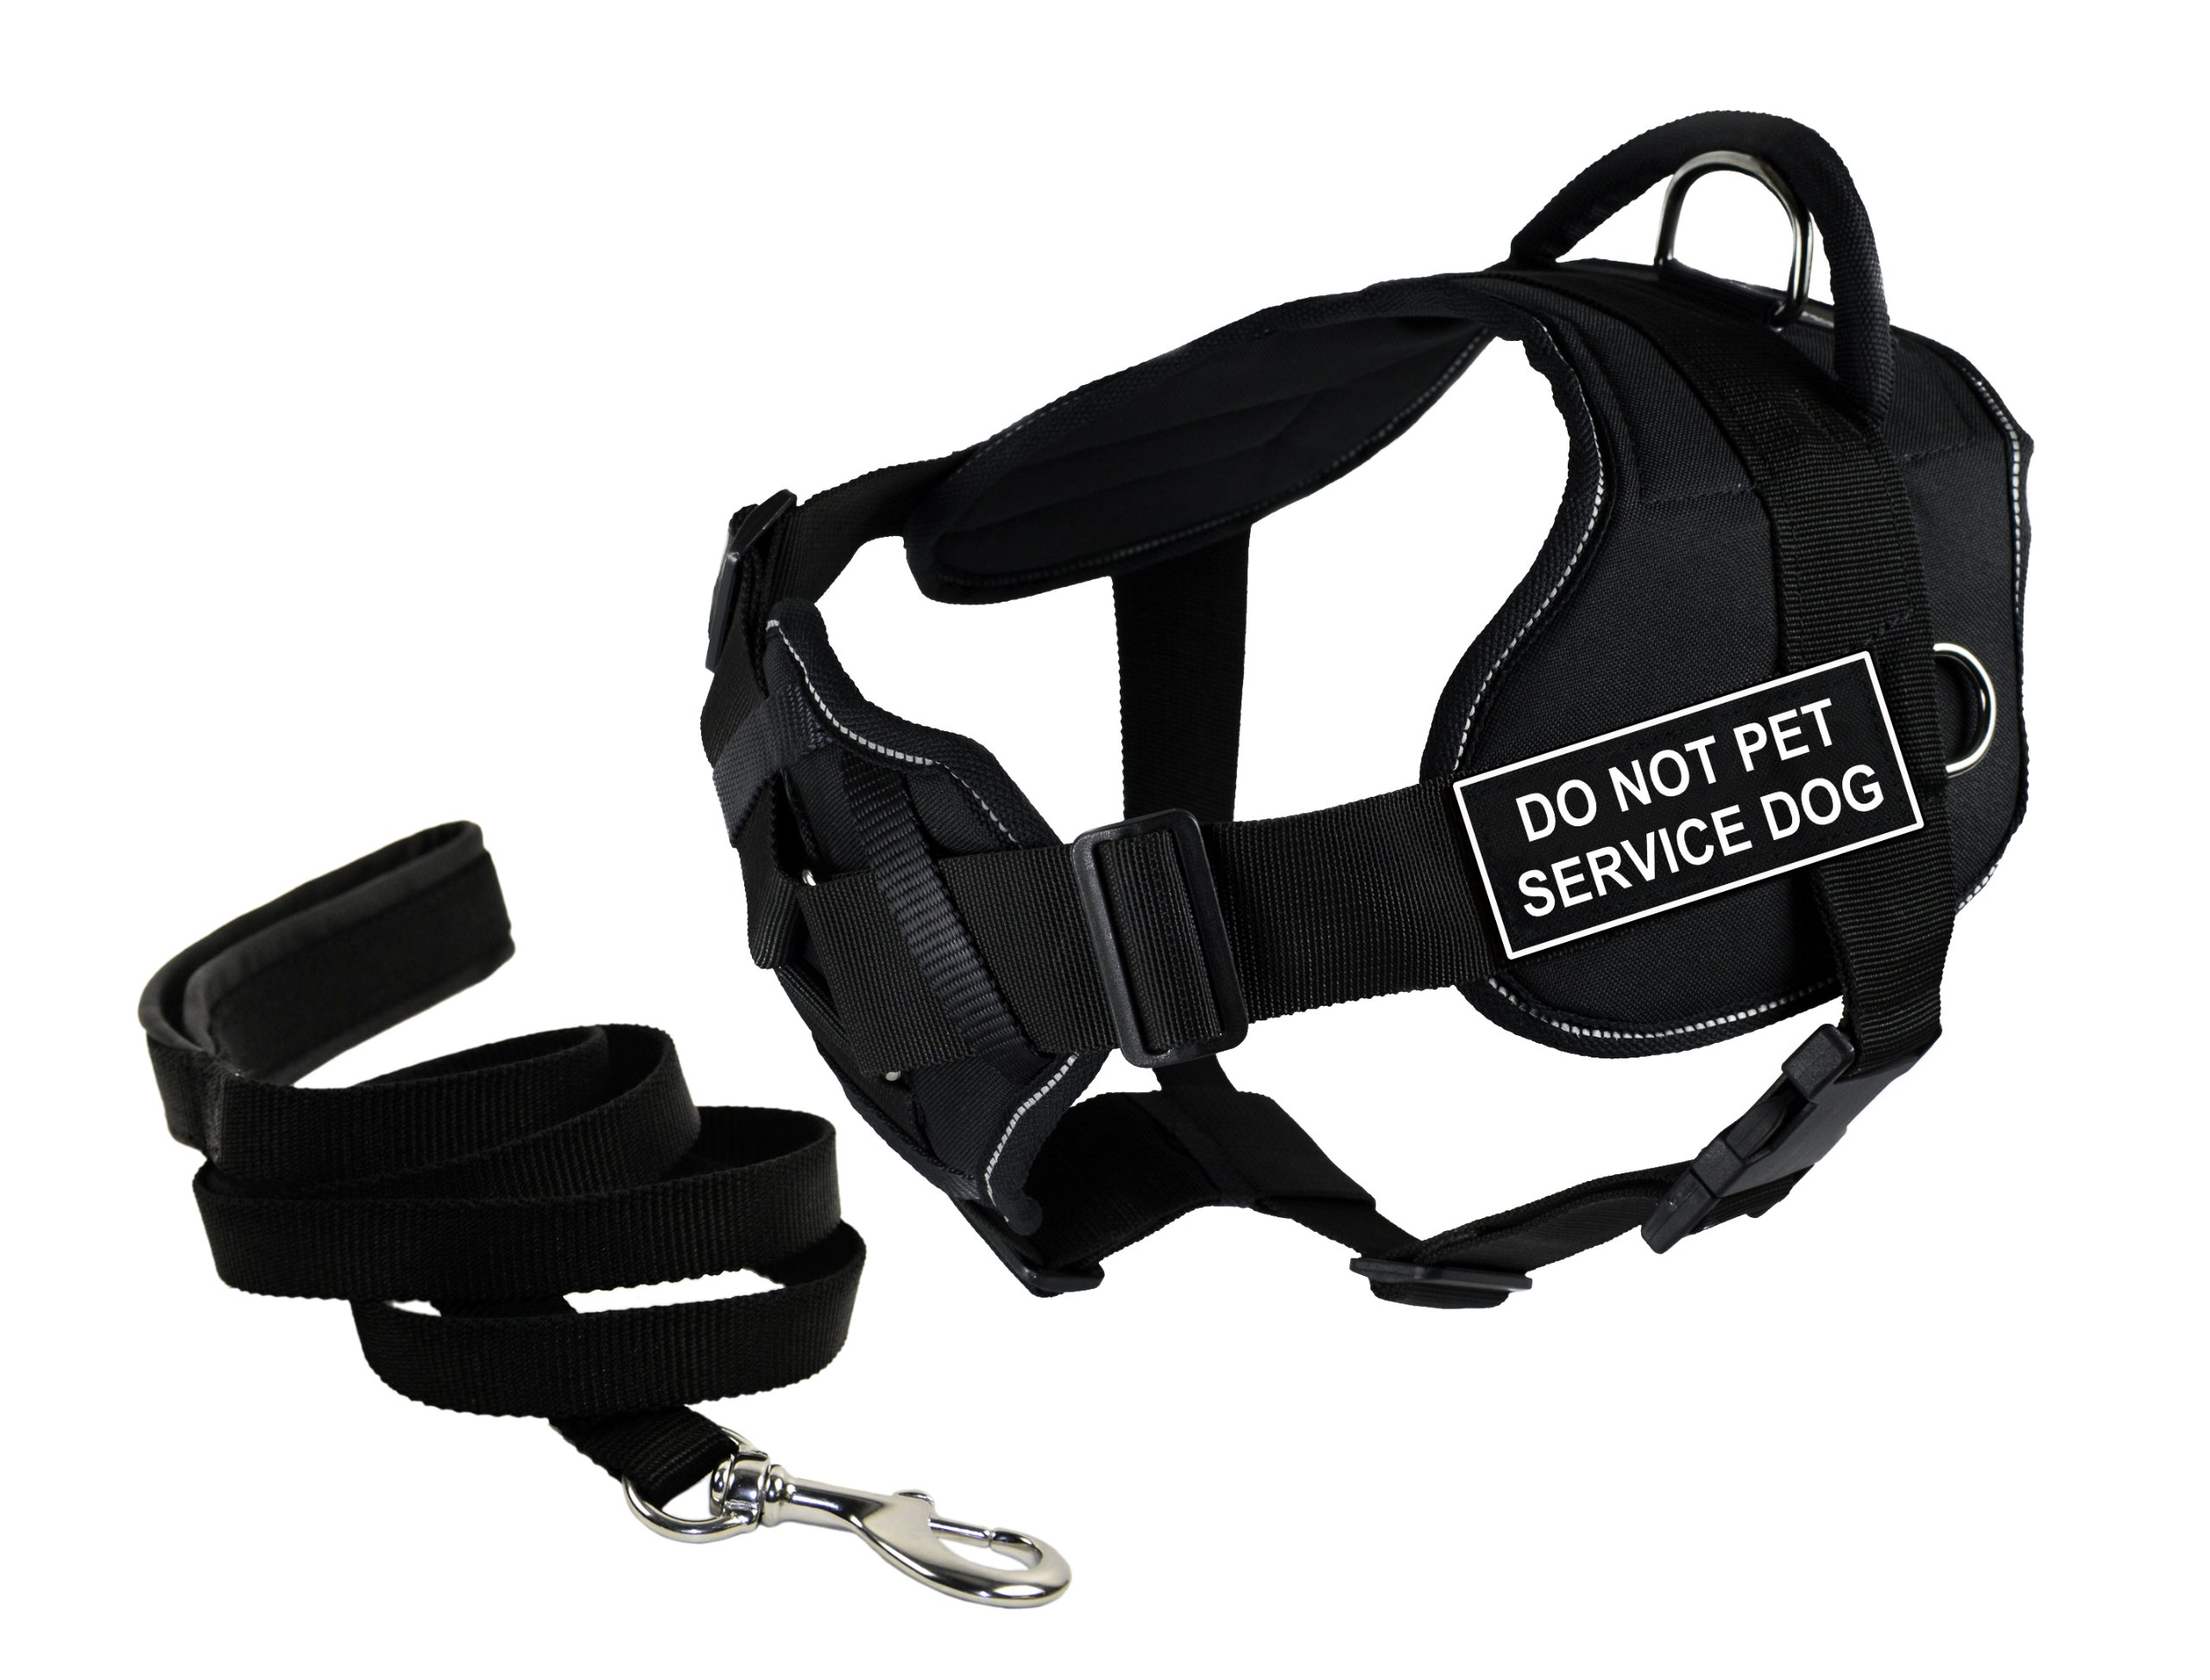 Dean & Tyler's DT Fun Chest Support ''DO NOT PET SERVICE DOG'' Harness with Reflective Trim, Medium, and 6 ft Padded Puppy Leash.